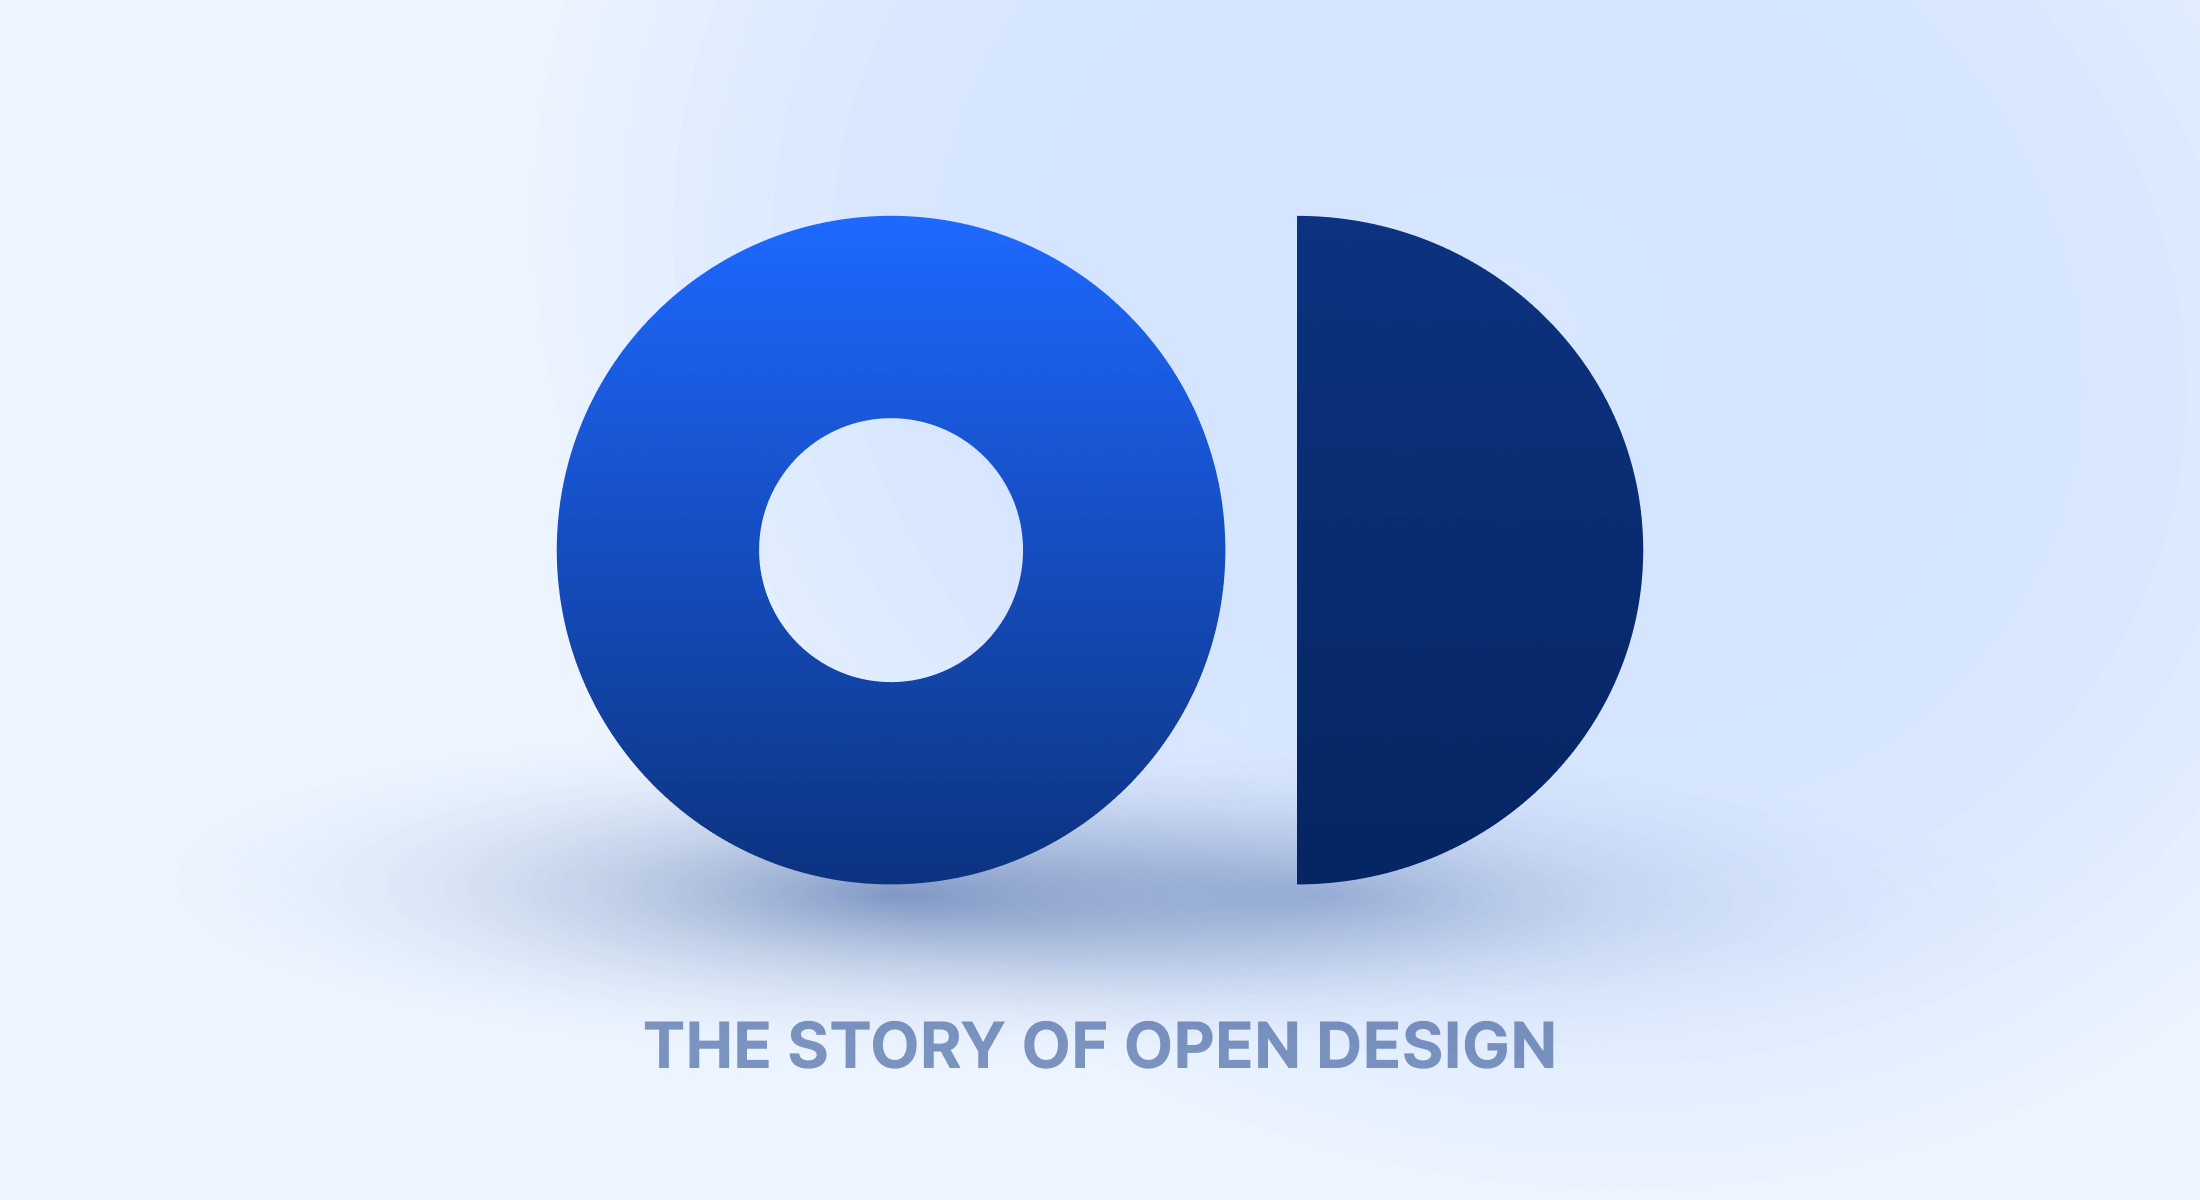 The Story of Open Design